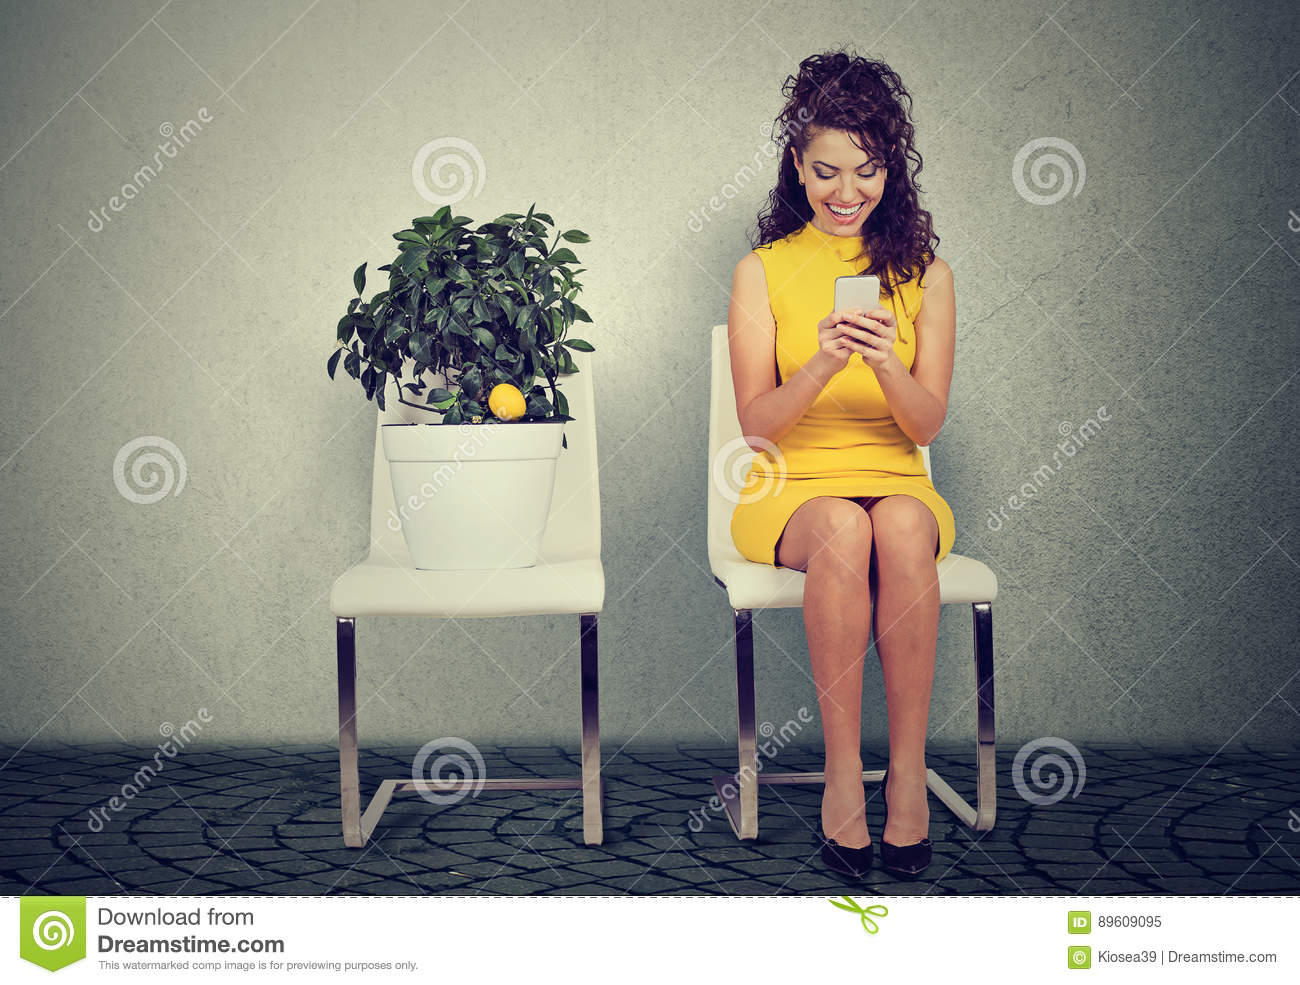 Woman Using Smart Phone Reading An Email Sitting On Chair Next To